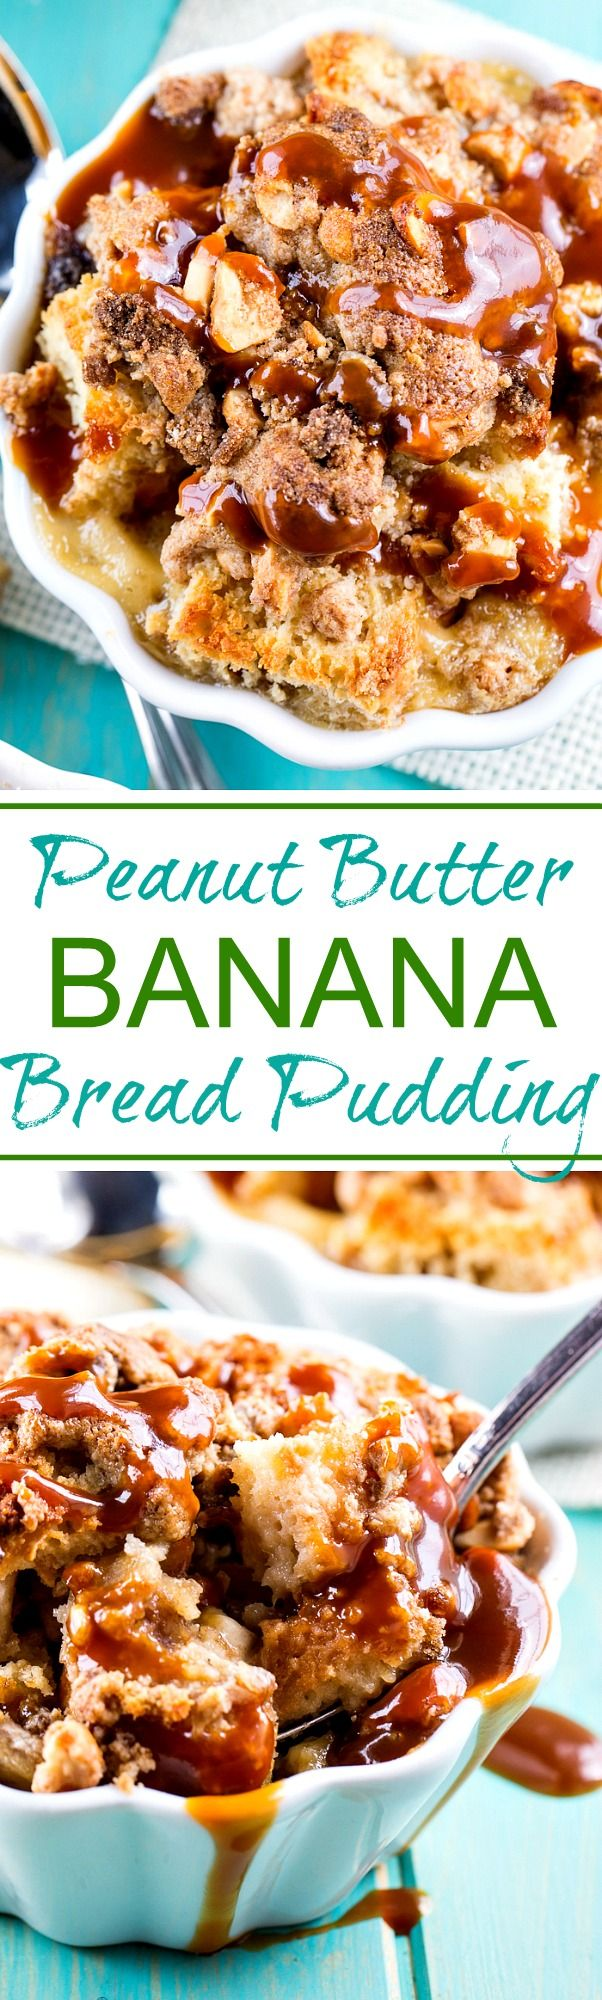 Slices of buttermilk bread are used to make peanut butter and banana sandwiches. The sandwiches are then cut into little cubes to be used for the bread pudding. You get the wonderful flavor of both banana and peanut butter in each and every bite.